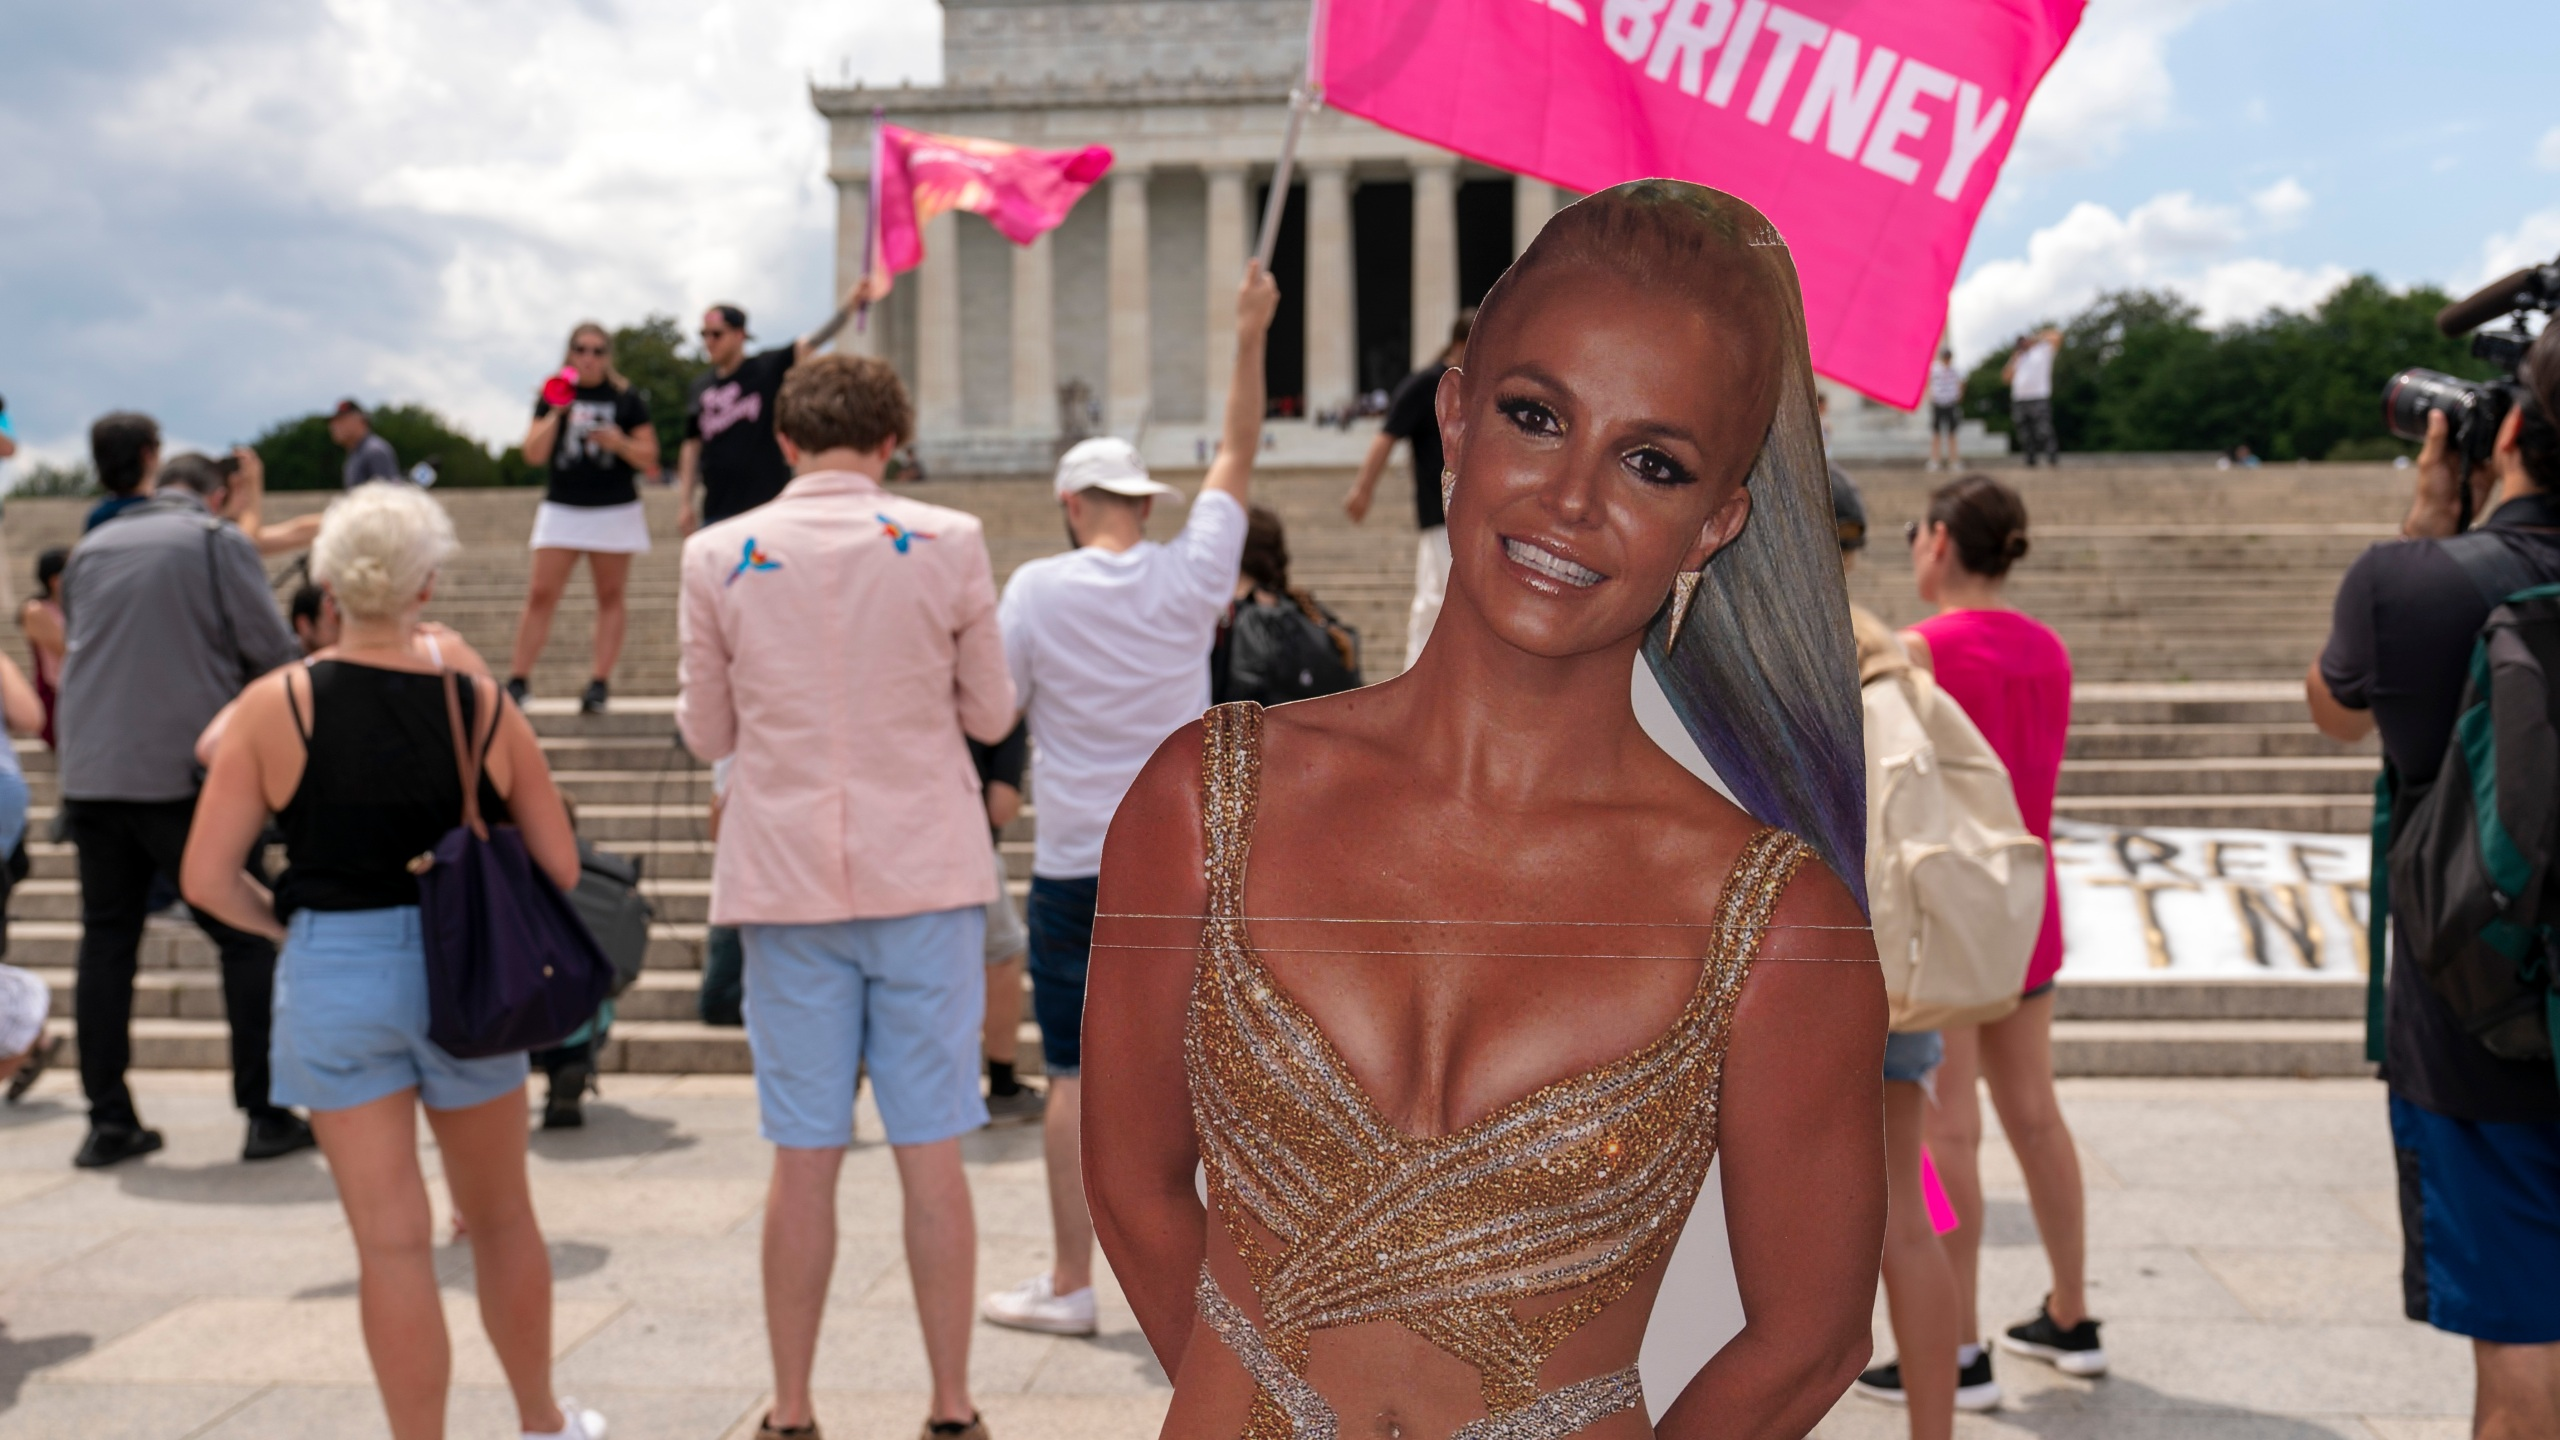 """Fans and supporters of pop star Britney Spears protest at the Lincoln Memorial, during the """"Free Britney"""" rally, Wednesday, July 14, 2021, in Washington. Rallies have been taking place across the country since the pop star spoke out against her conservatorship in court last month. (AP Photo/Jose Luis Magana)"""